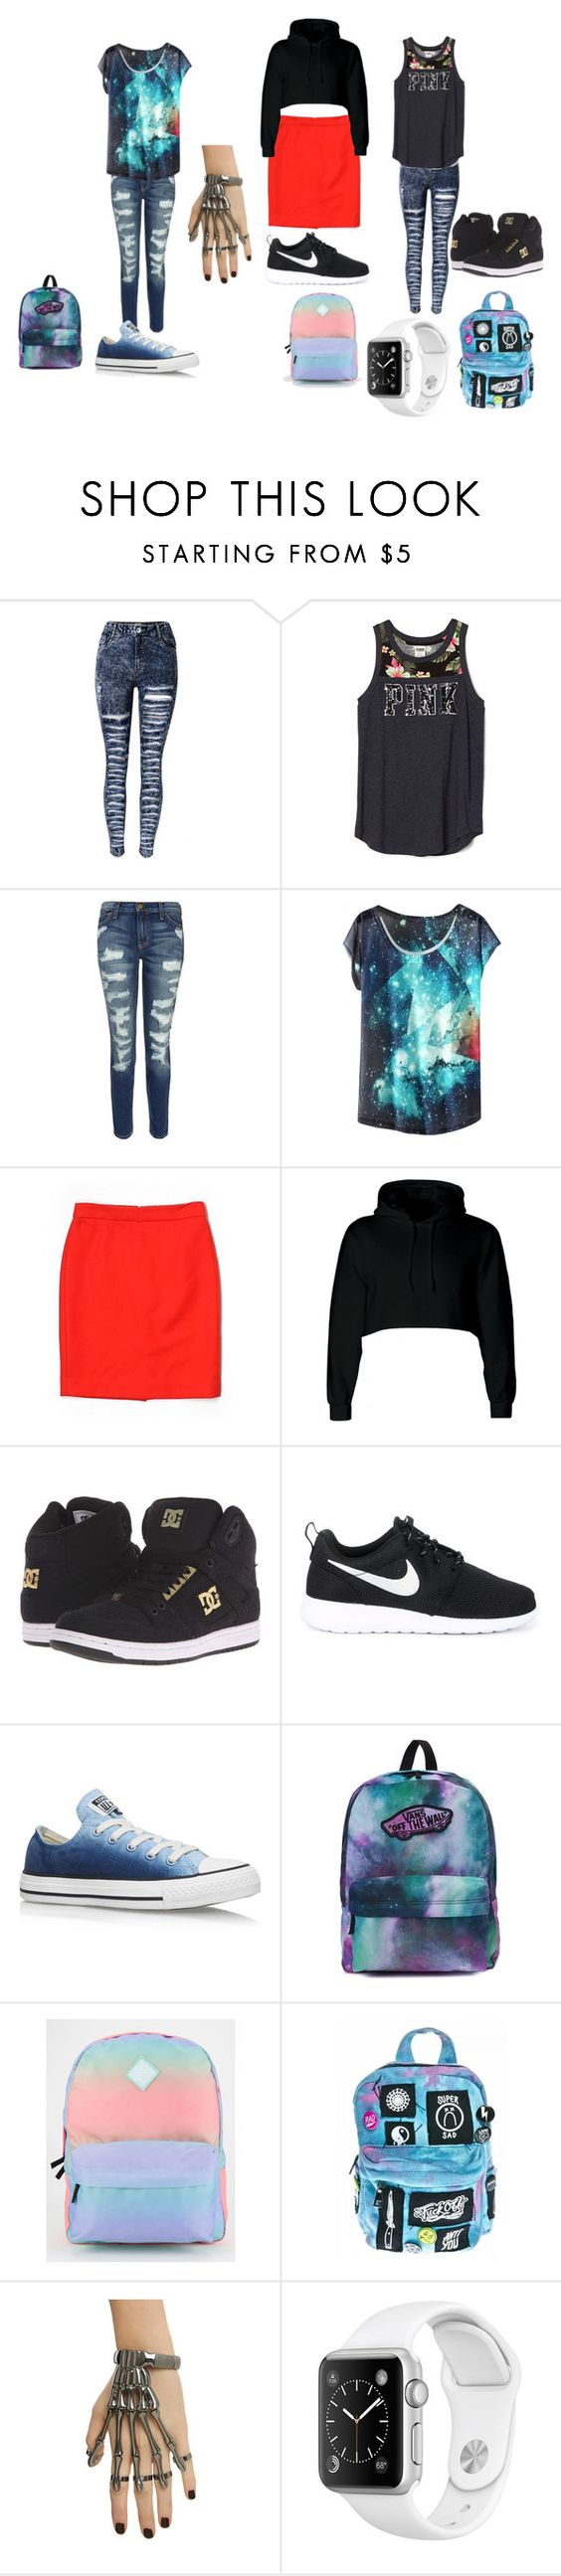 """Set made by Elestren (age 10)"" by noa-kramer on Polyvore featuring Current/Elliott, J.Crew, DC Shoes, NIKE, Converse, Vans and Current Mood"